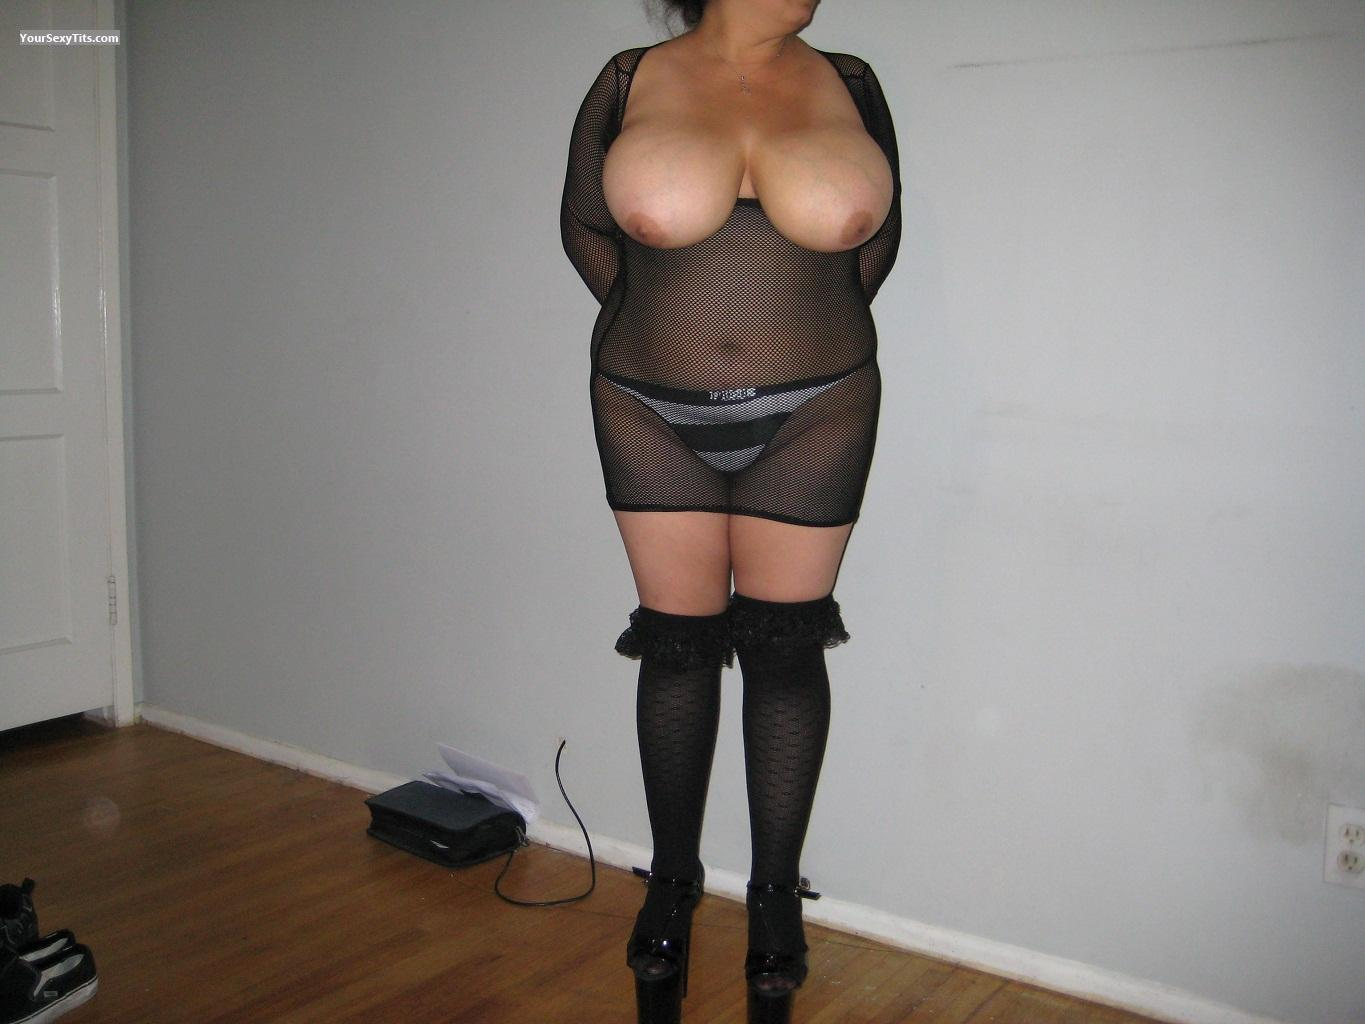 Tit Flash: Very Big Tits - Latinabigtits from United States